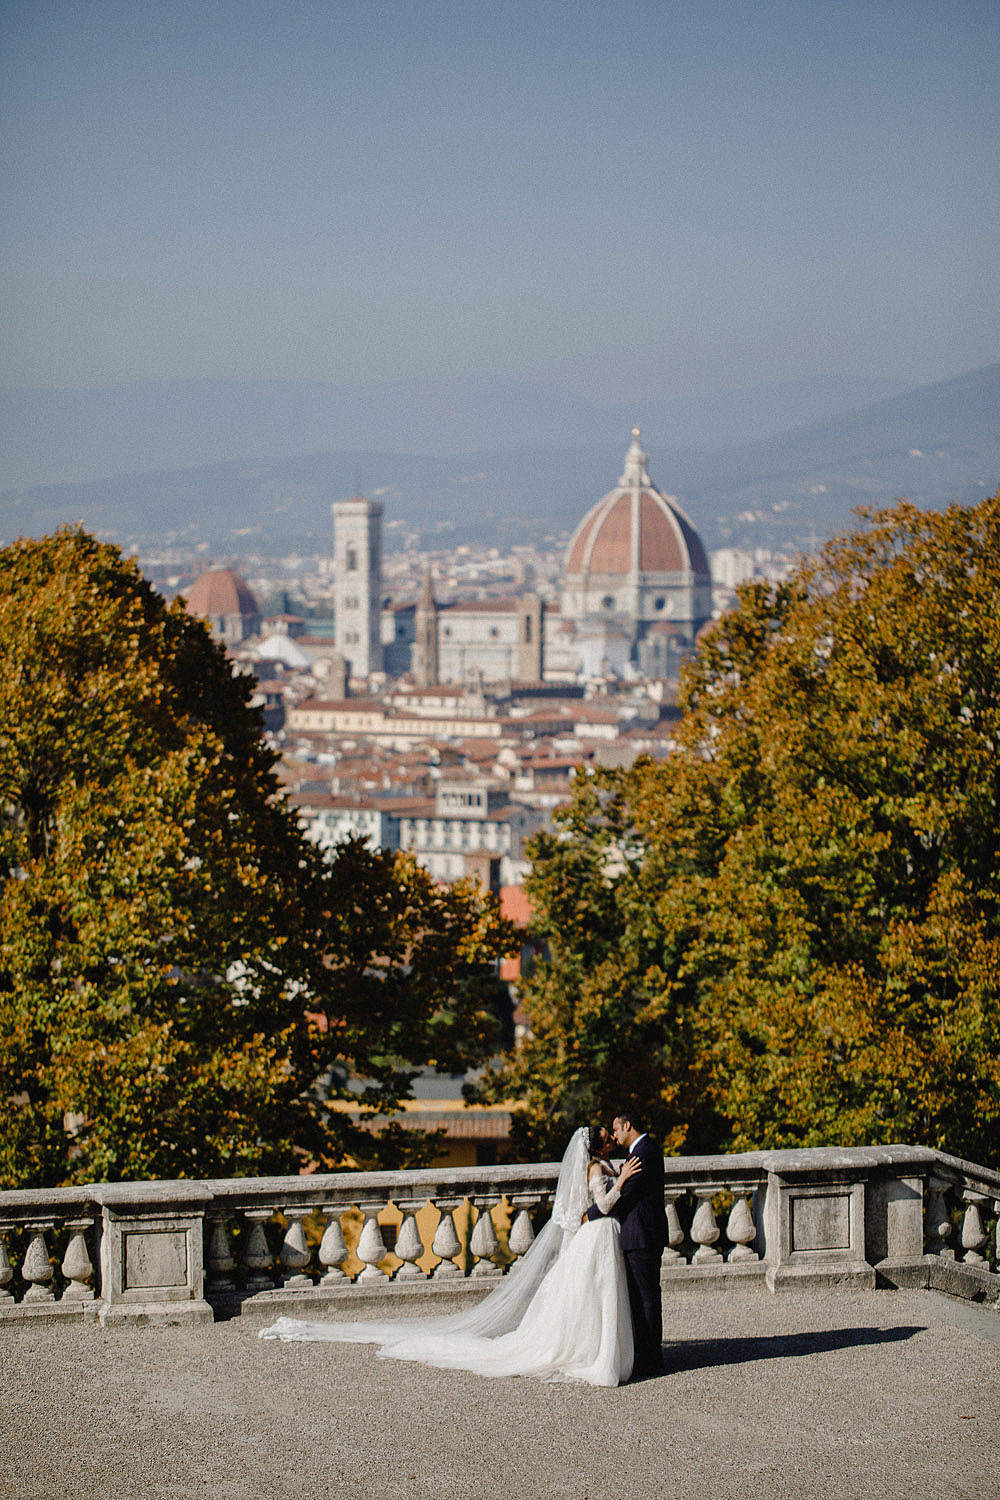 LUNA DI MIELE A FIRENZE TOSCANA :: Luxury wedding photography - 27